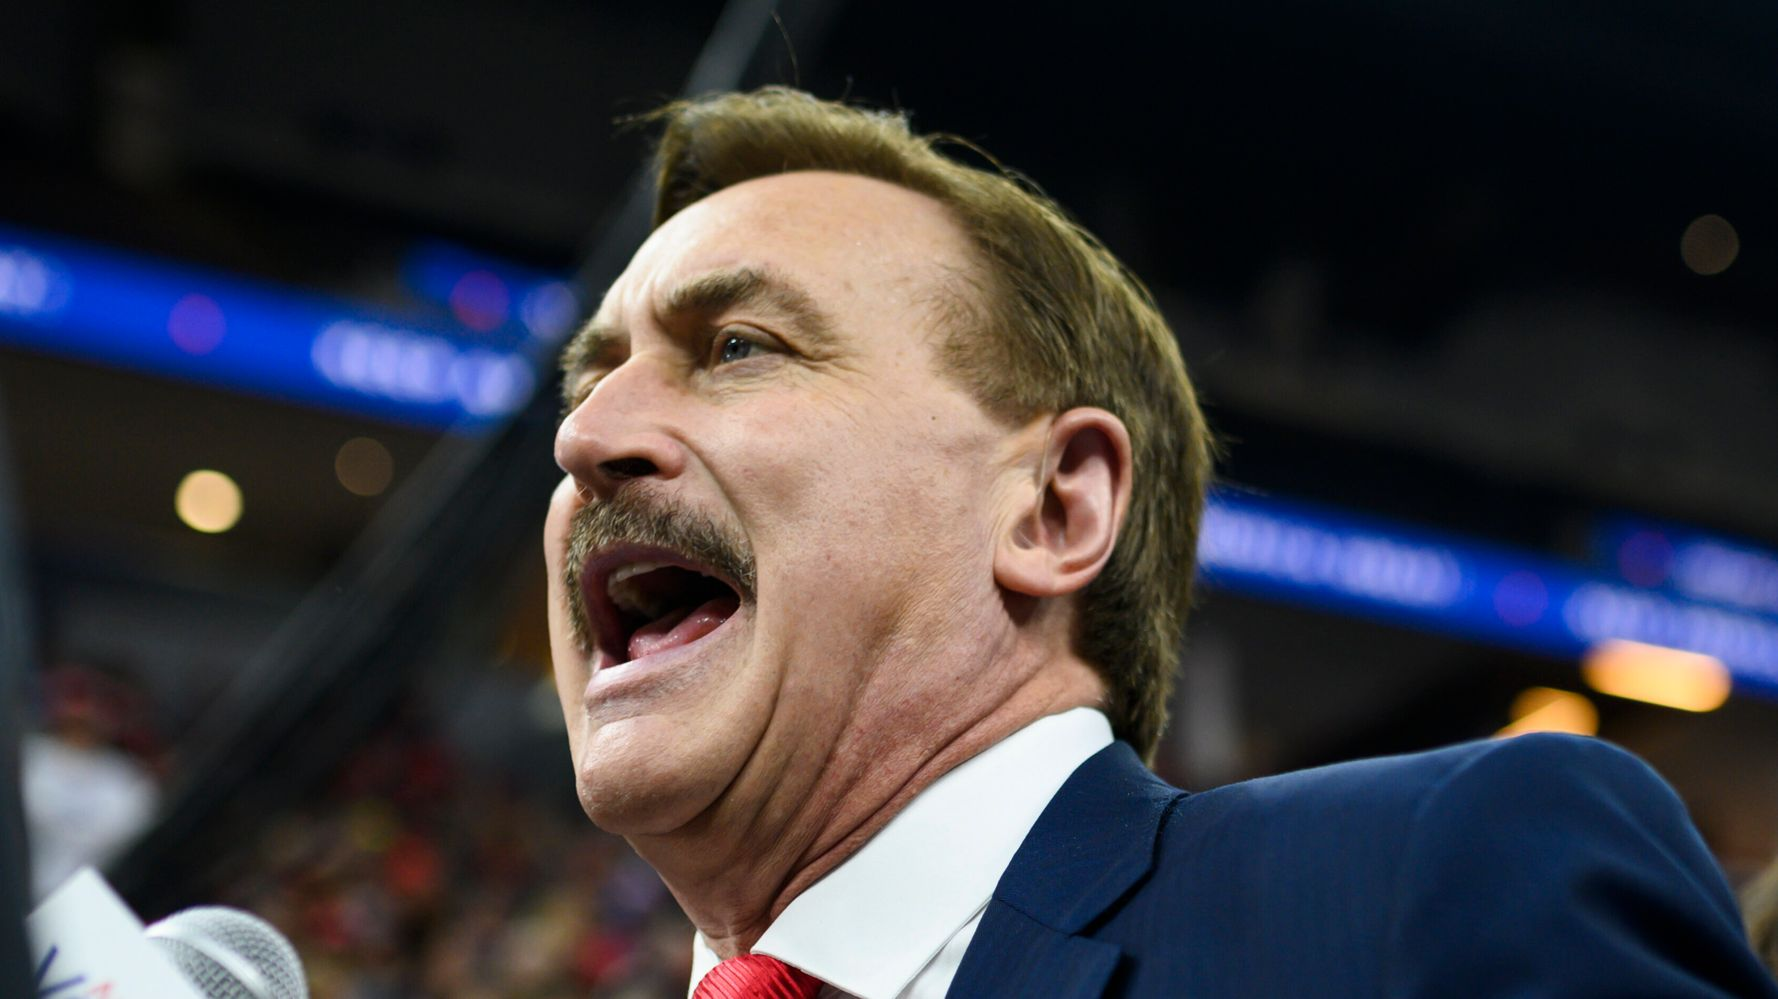 'MyPillow Guy' Wigs Out At Trump Rally, Says 'People Will Go To Prison' For Georgia Vote